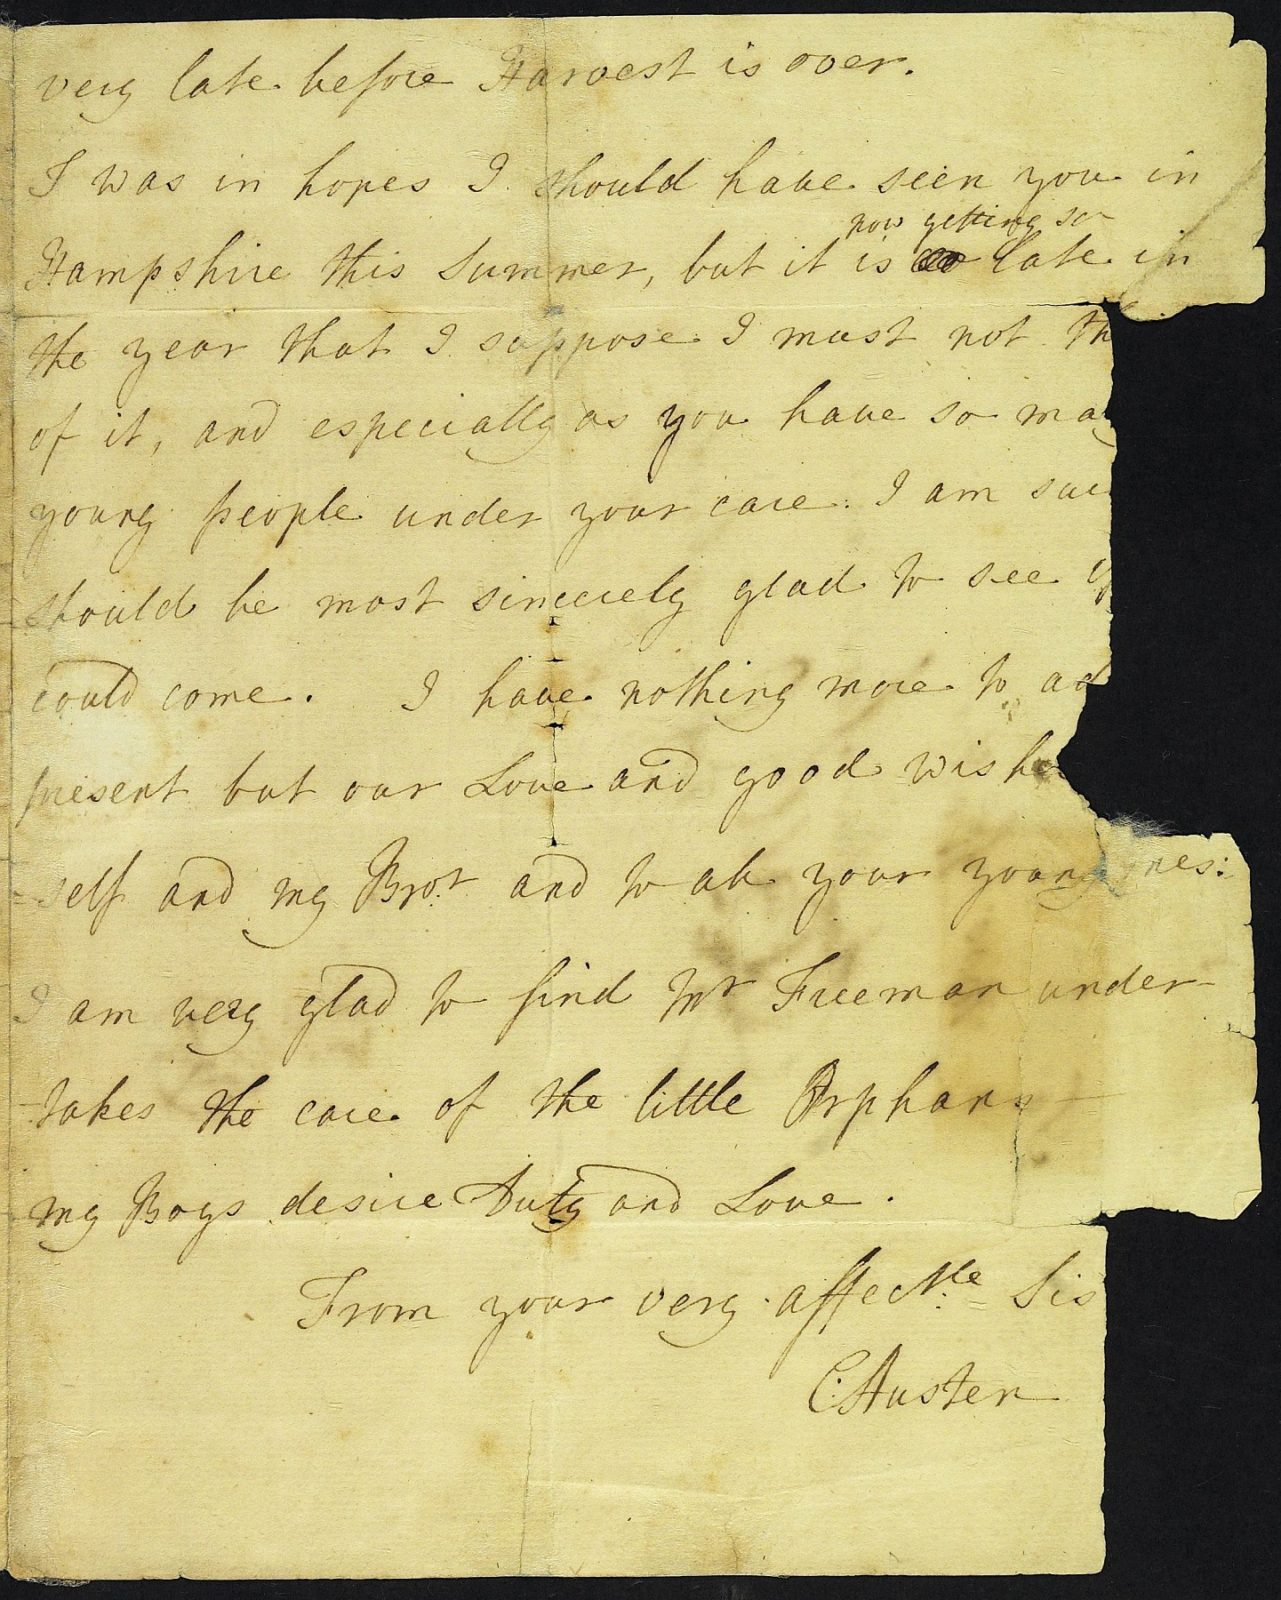 Letter from Mrs Austen to Mrs Walter, 20 August 1775, page 3